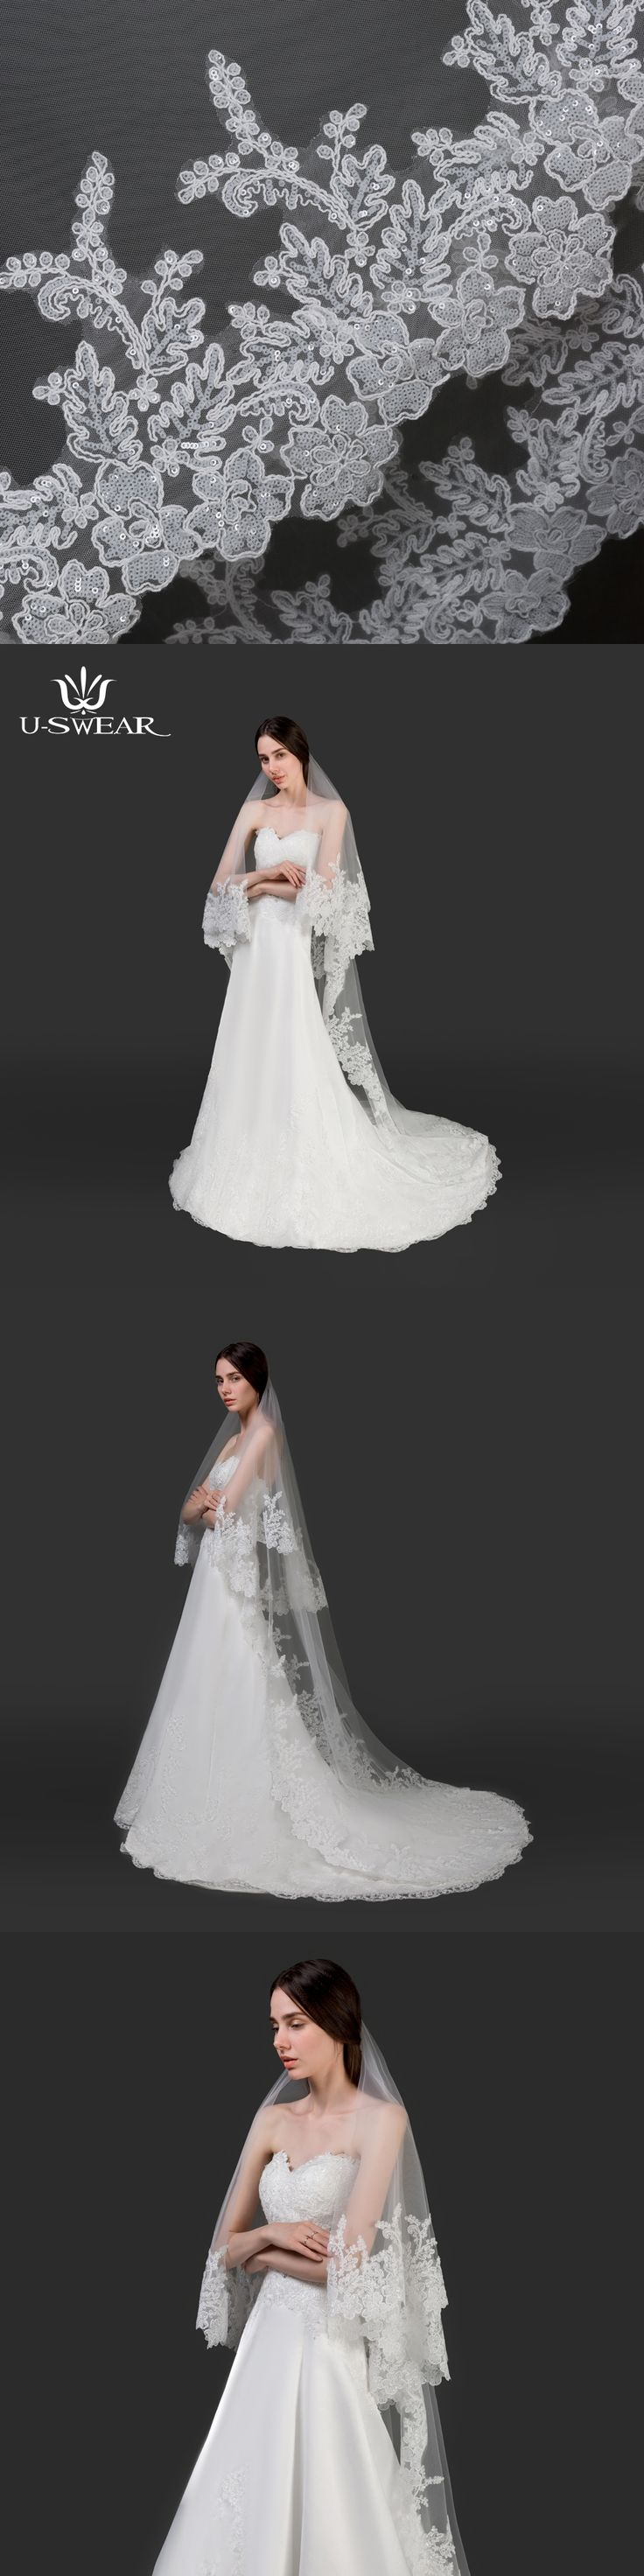 new arrive Stock Wedding Accessories long Simple Wedding Veil White Two Layer Bridal Veil With Comb high quality Wedding Veil